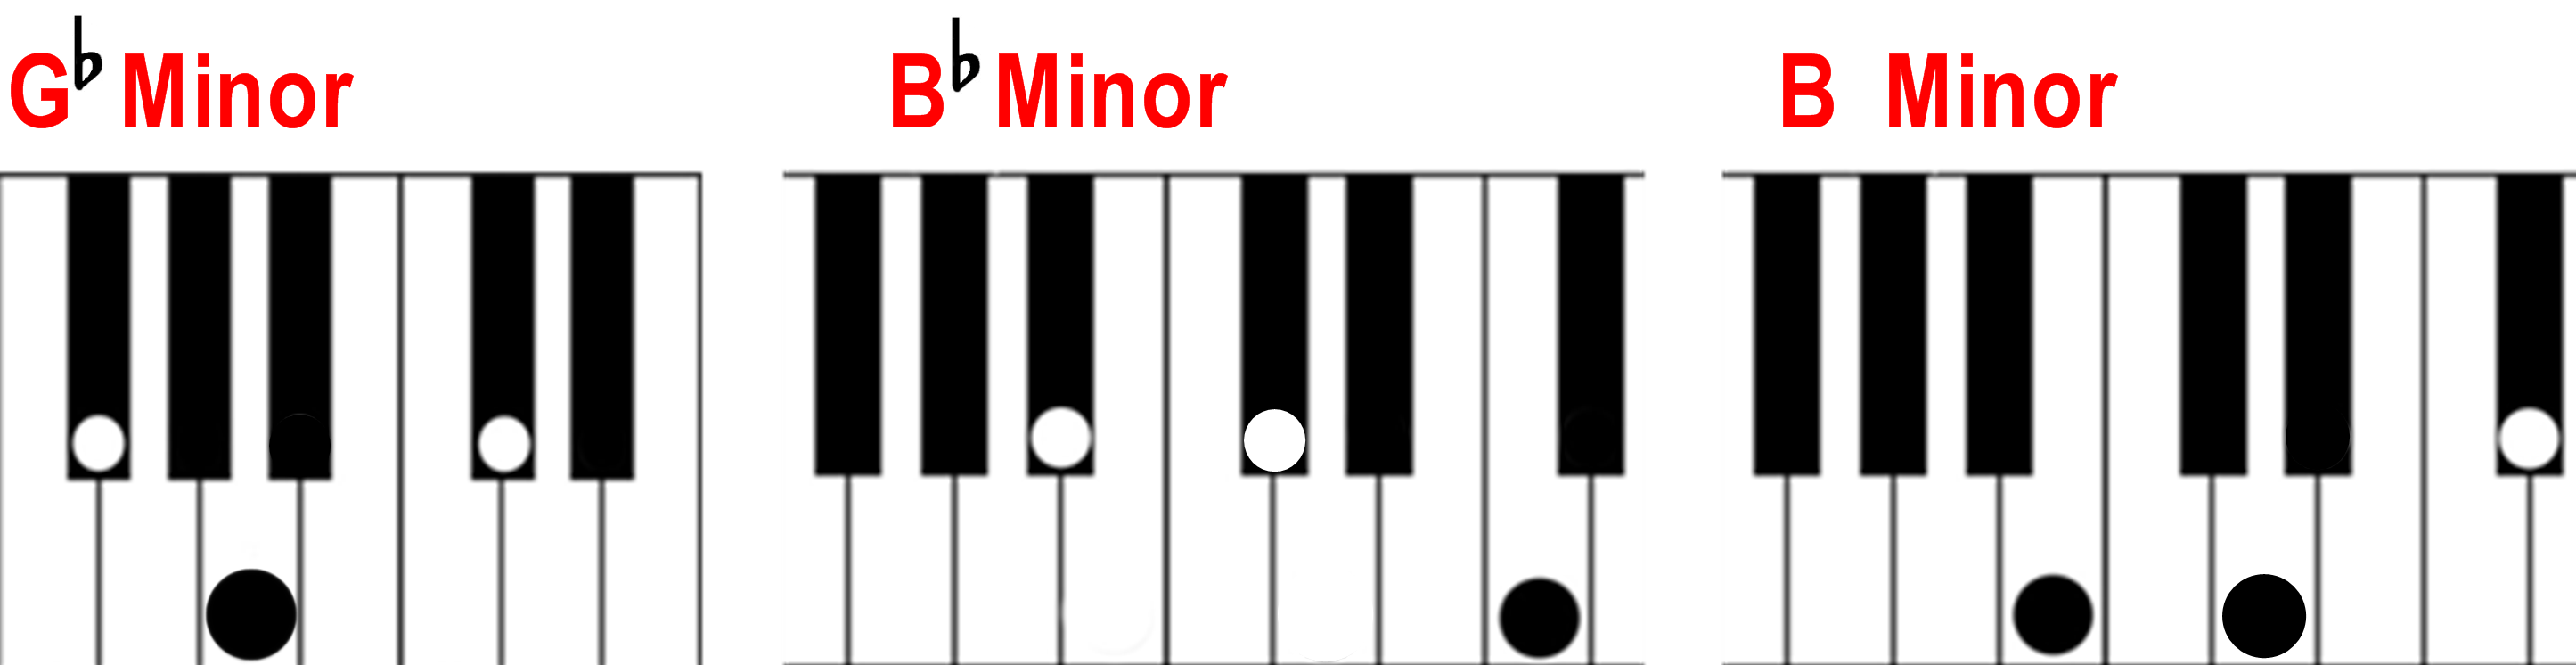 https://musicmotivated.com/wp-content/uploads/2016/08/b-minor-7-chord-piano.jpg